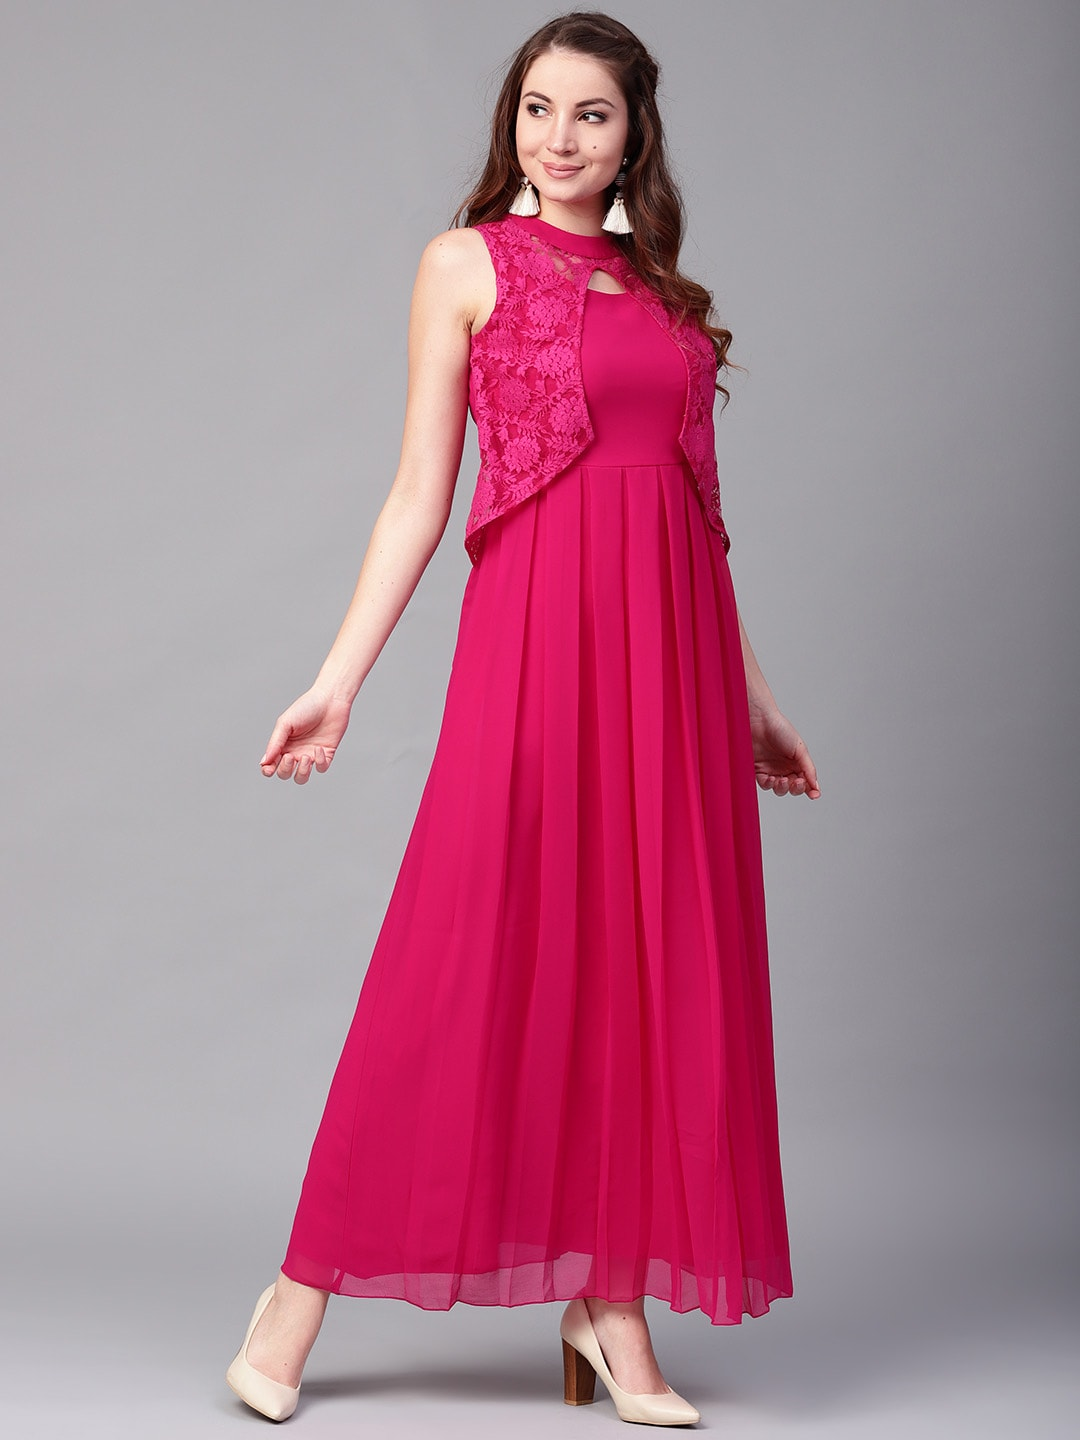 5779b11ce00 Long Dresses - Buy Maxi Dresses for Women Online in India - Upto 70% OFF